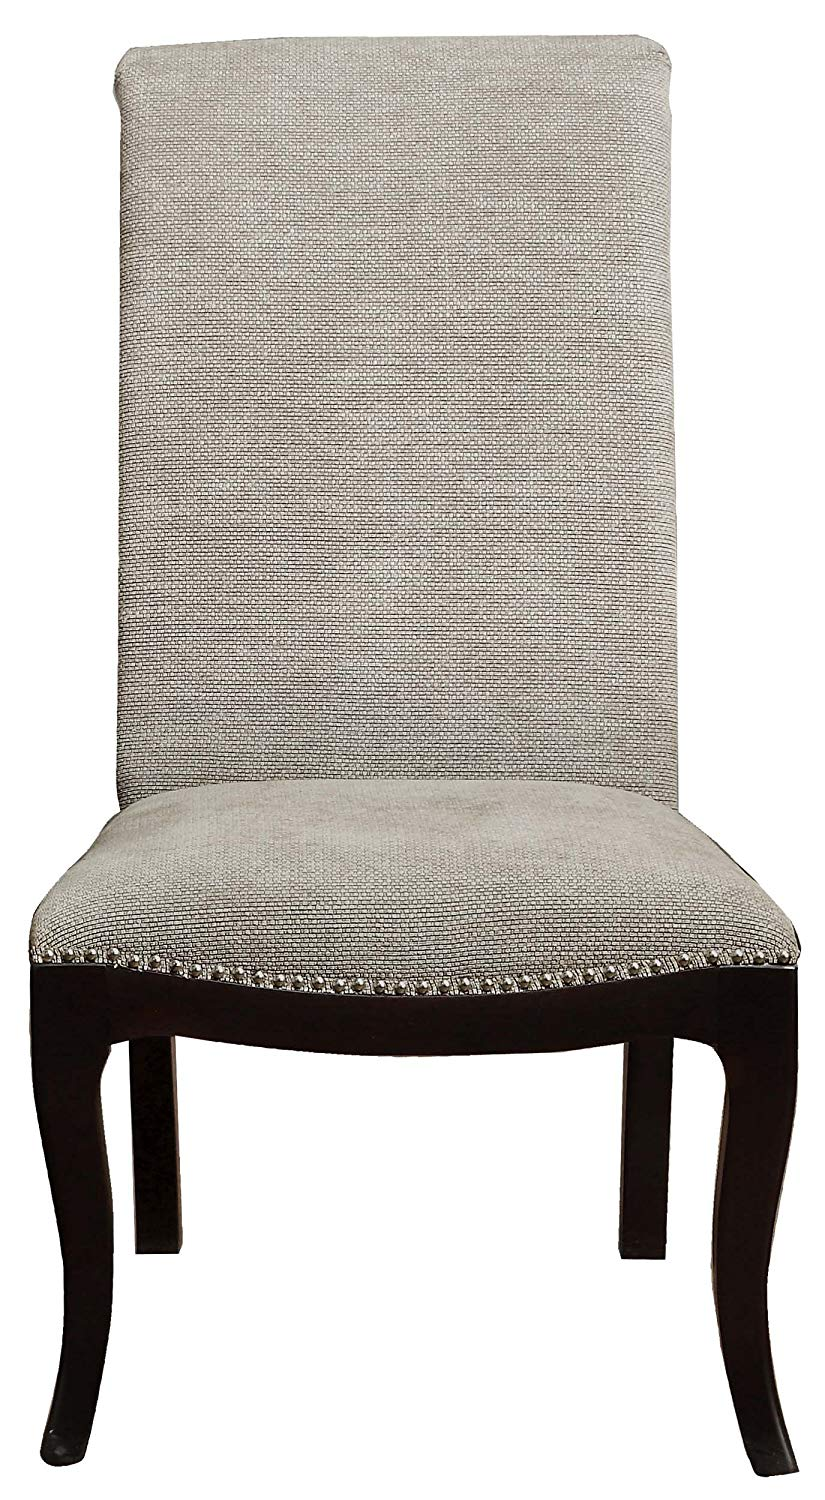 Homelegance Savion Espresso And Natural Polyester Finish 2 Piece Dining Side Chair